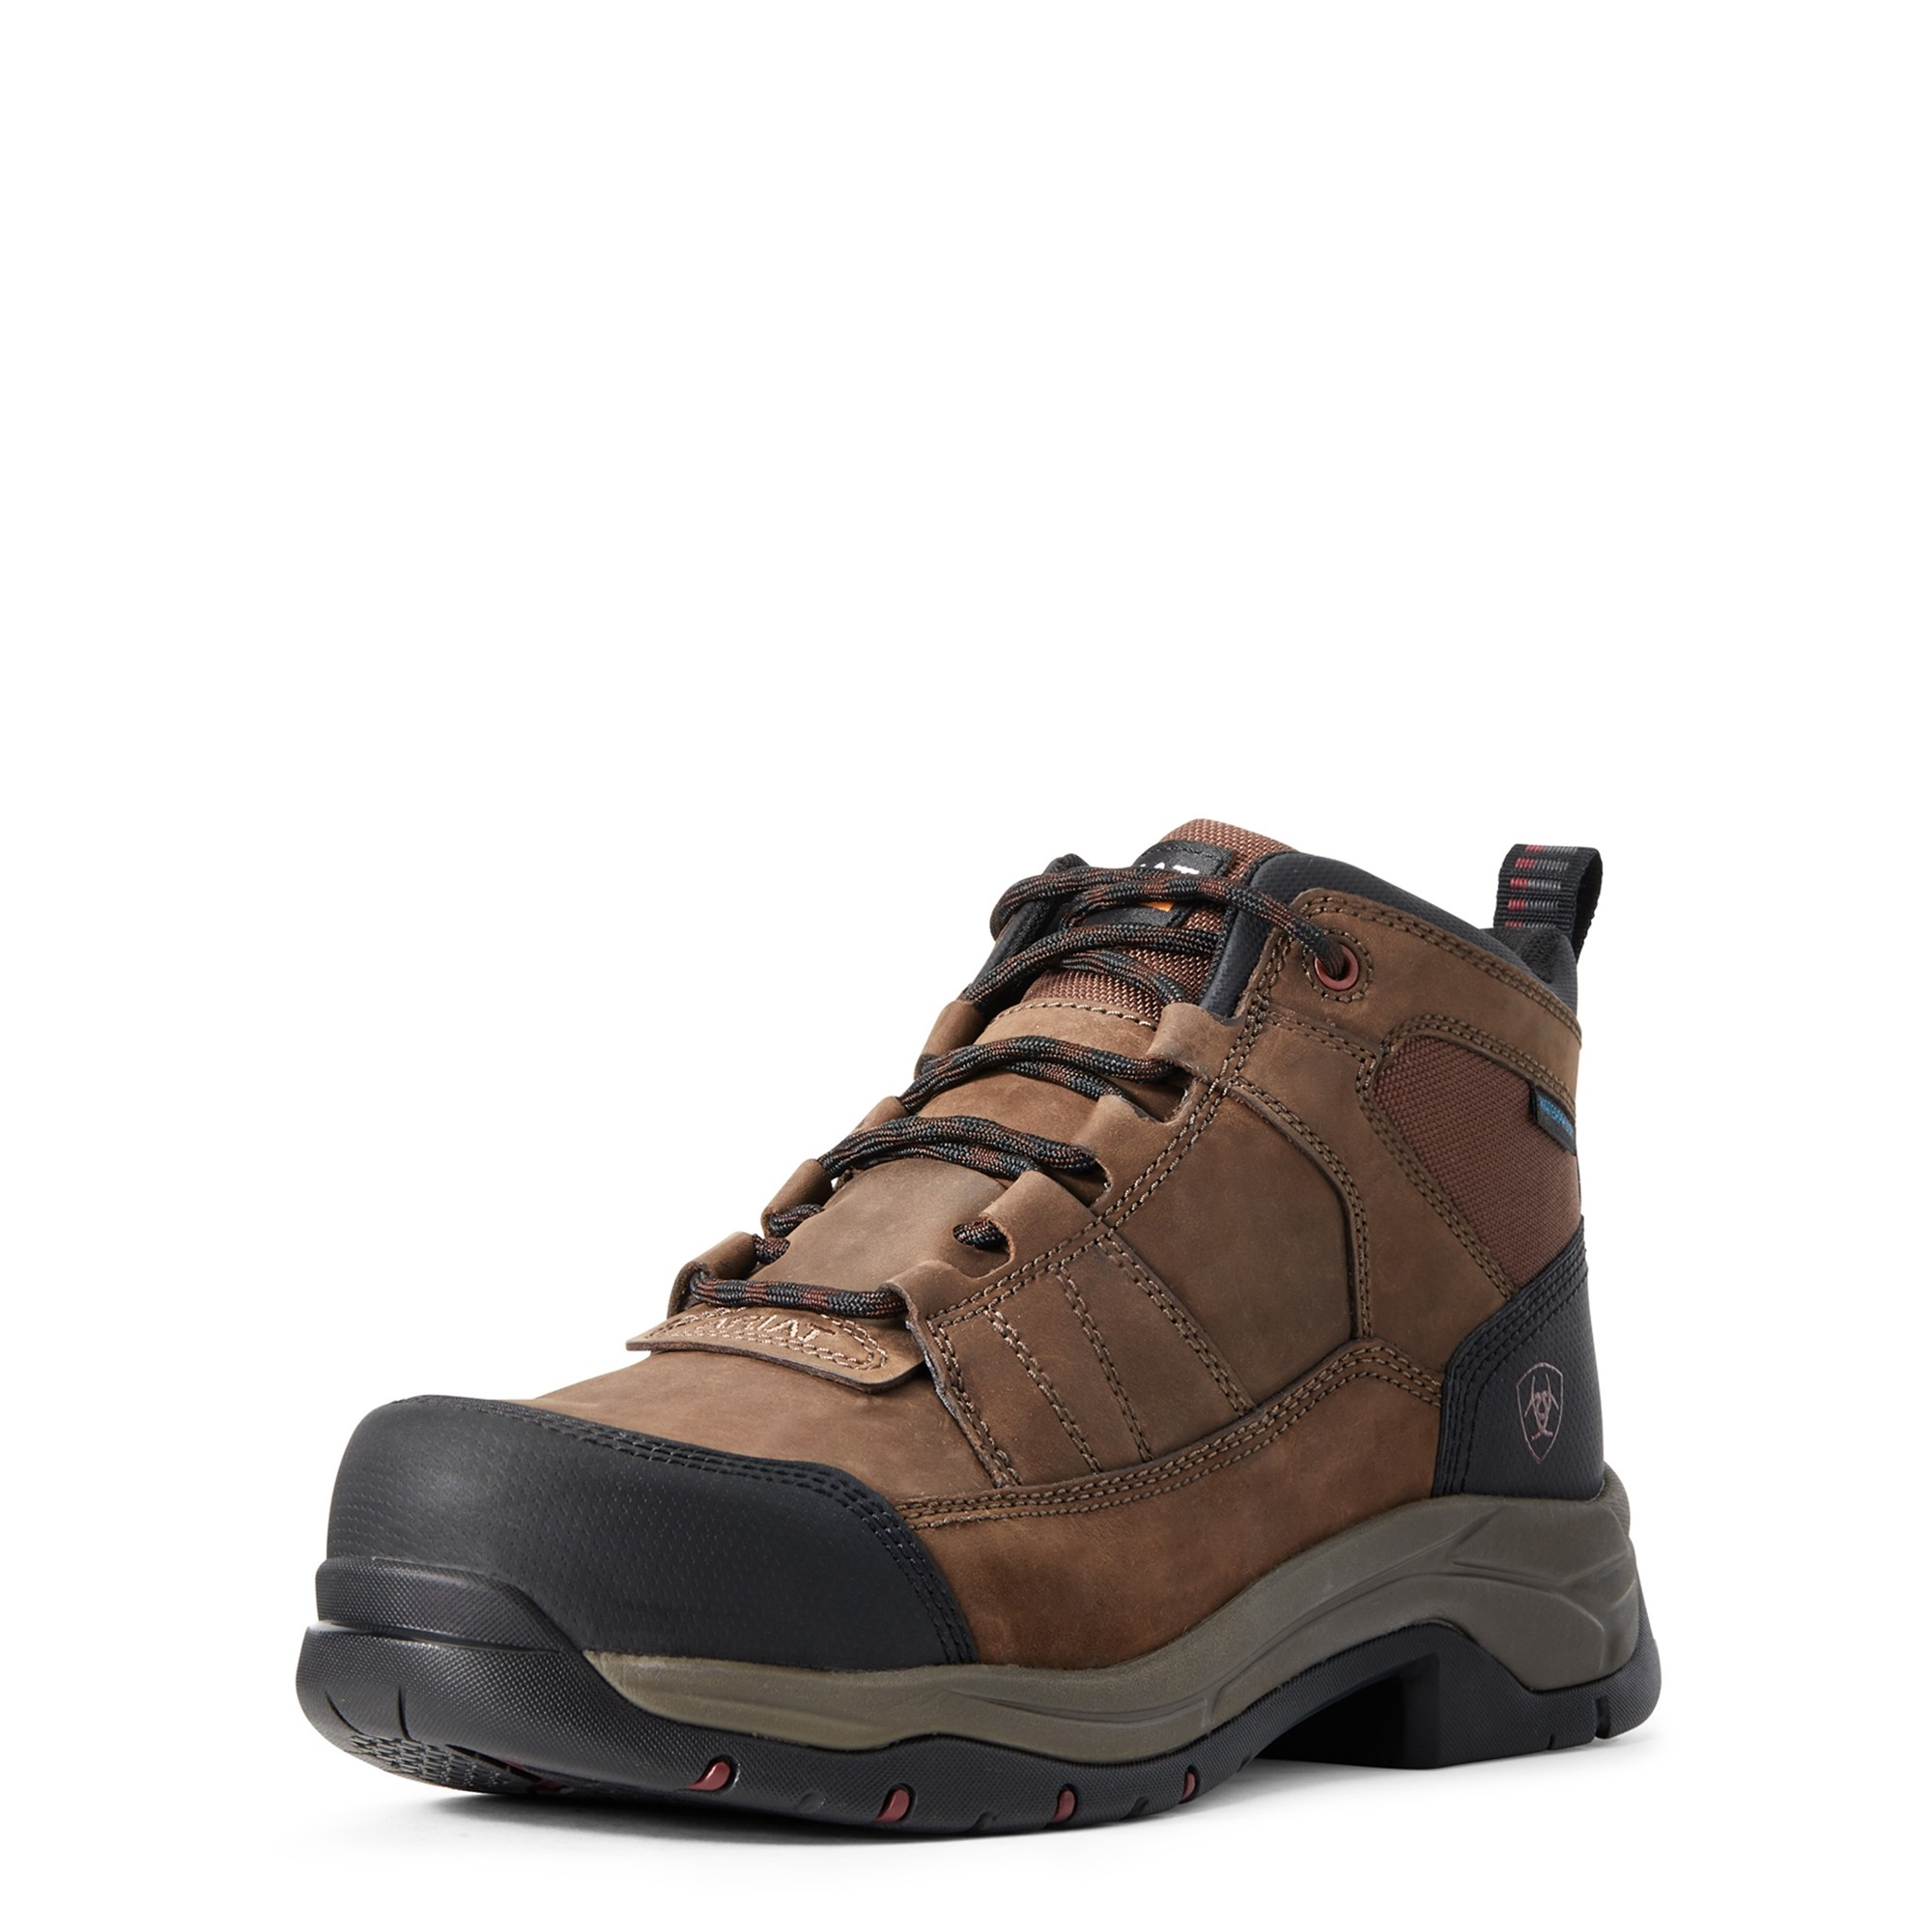 Ariat Mens Telluride Work Waterproof Composite Toe Work Boot  - Thomas Irving's equestrian and accessories store  Ariat Mens Telluride Work Waterproof Composite Toe Work Boot